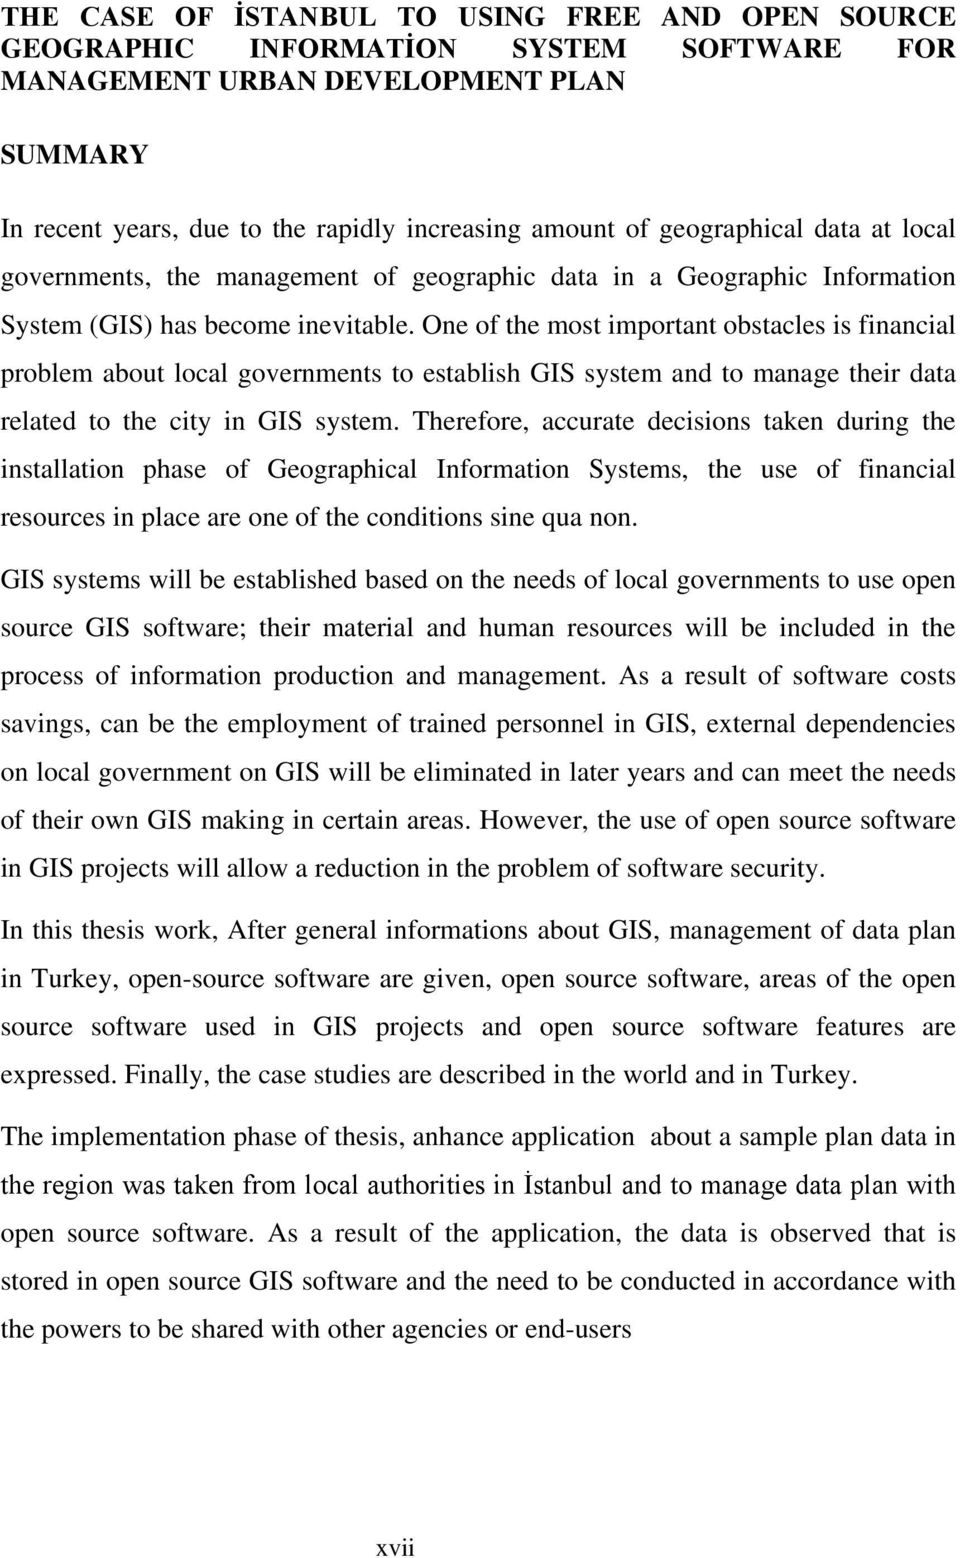 One of the most important obstacles is financial problem about local governments to establish GIS system and to manage their data related to the city in GIS system.